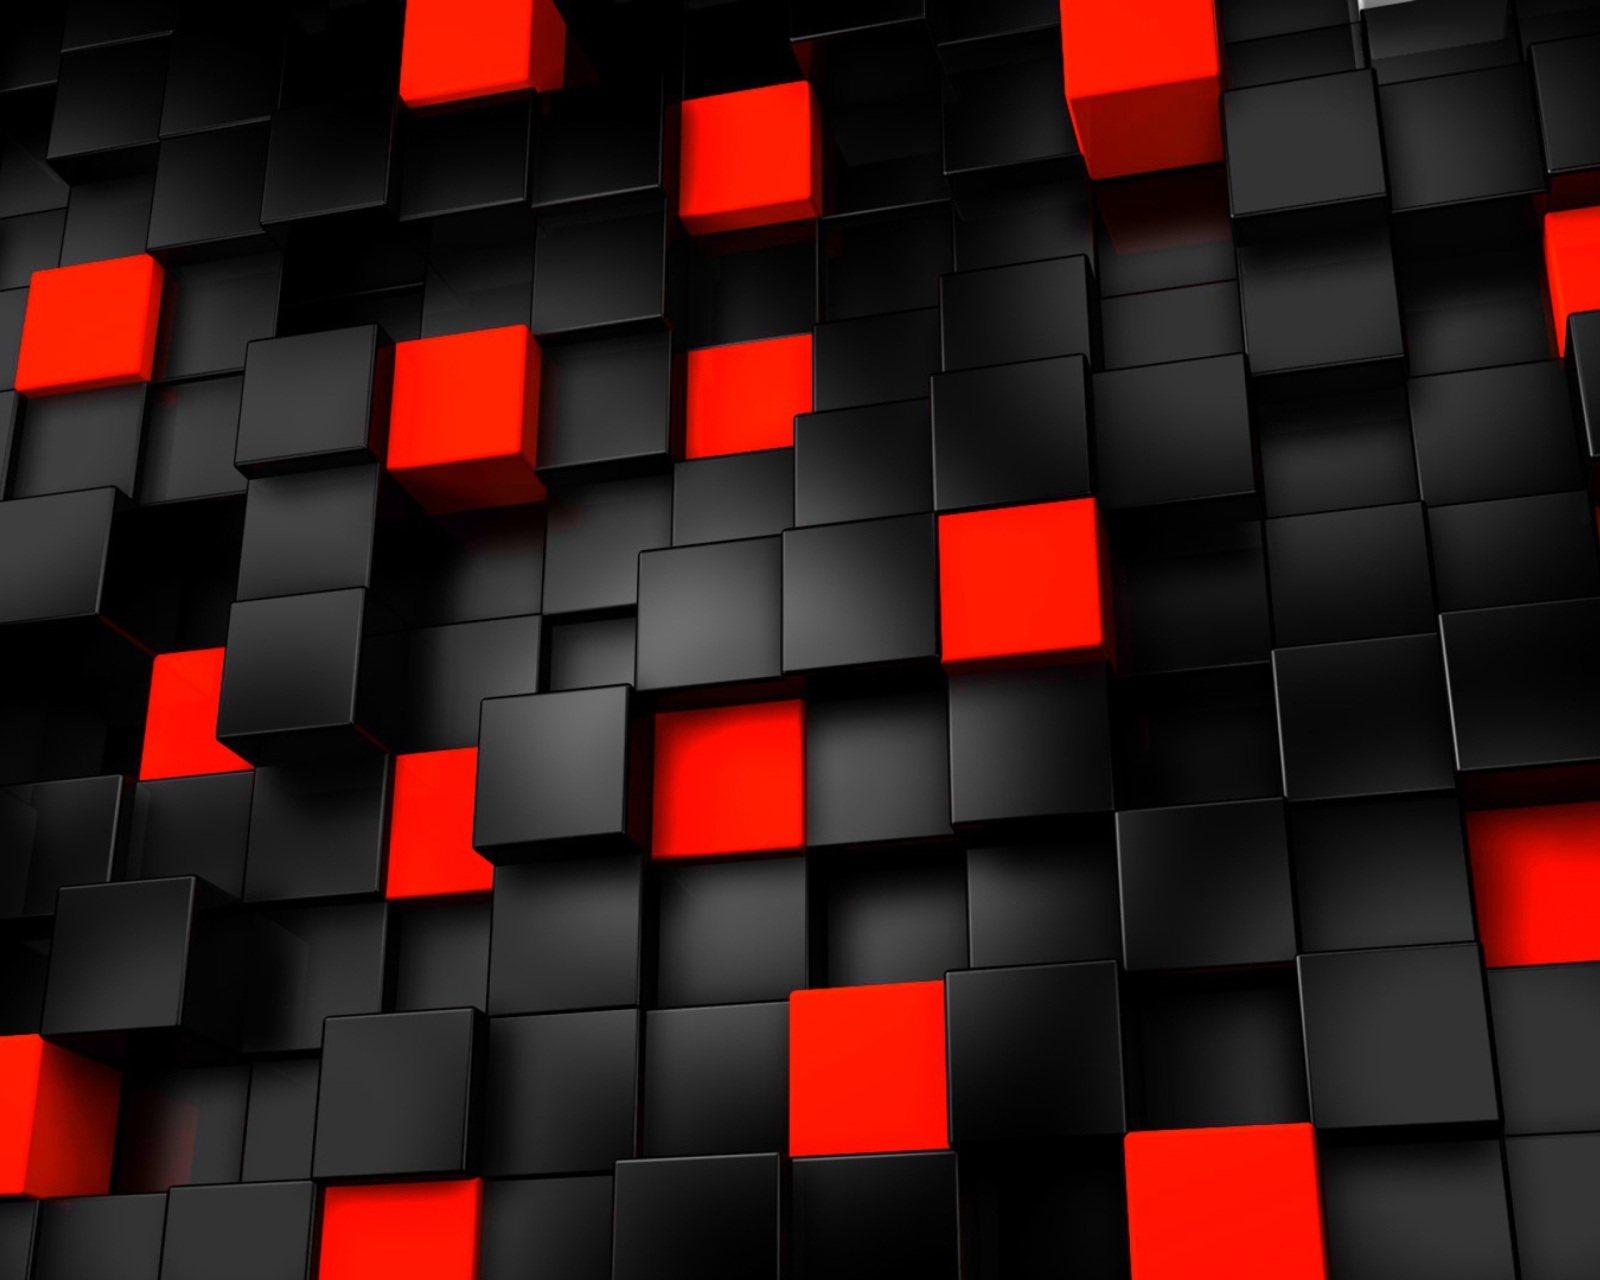 3d black cubes backgrounds wallpapers1 wallpaper with high Car 1600x1280